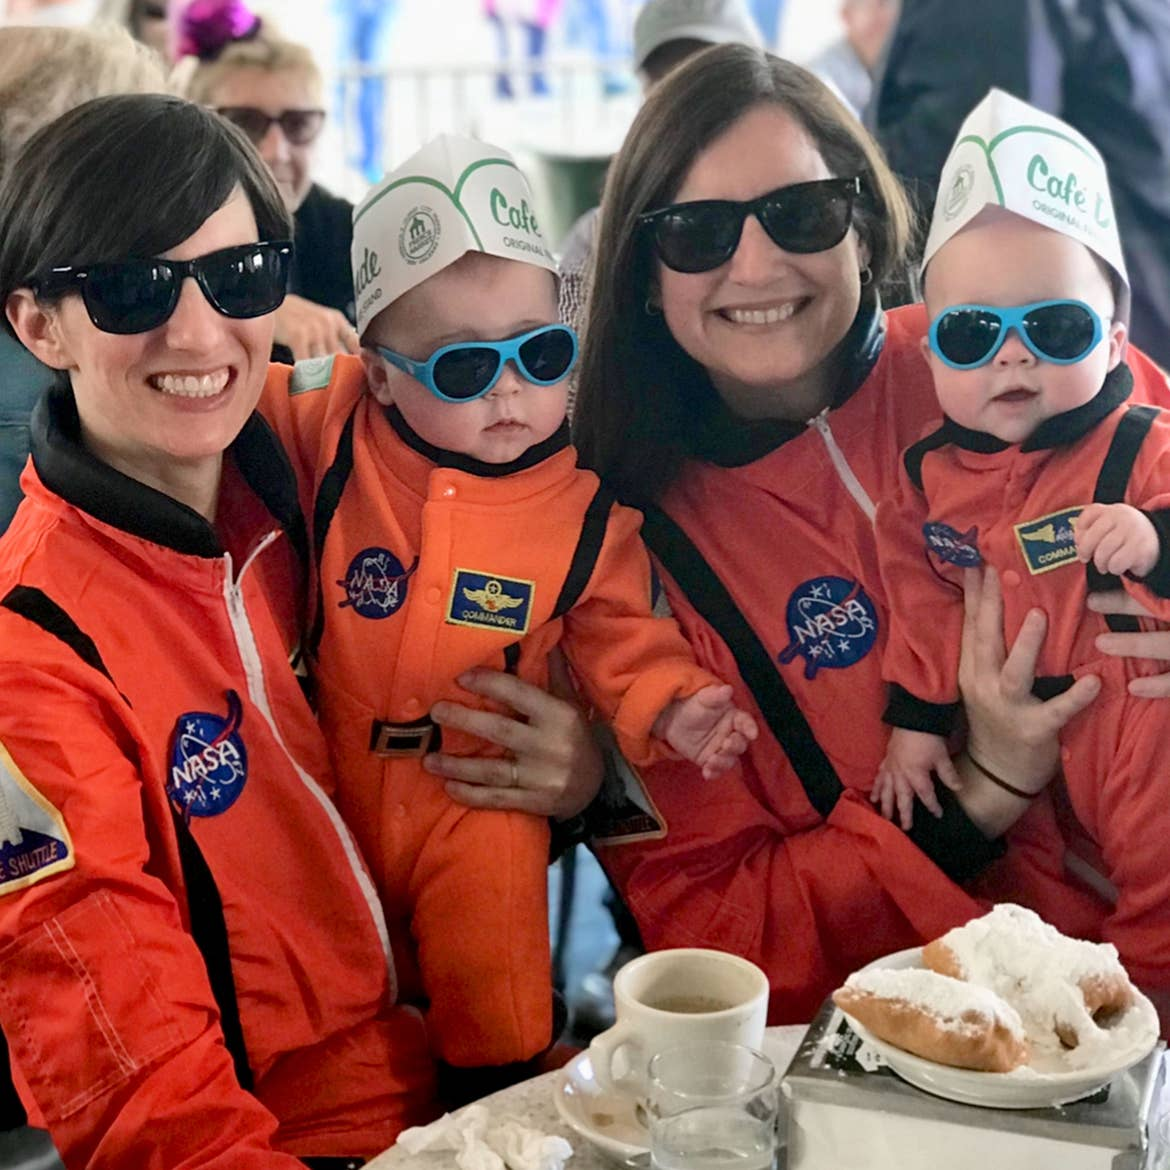 Featured Contributor, Catherine Karas, and her family enjoy beignets indoors dressed in orange astronaut suits.